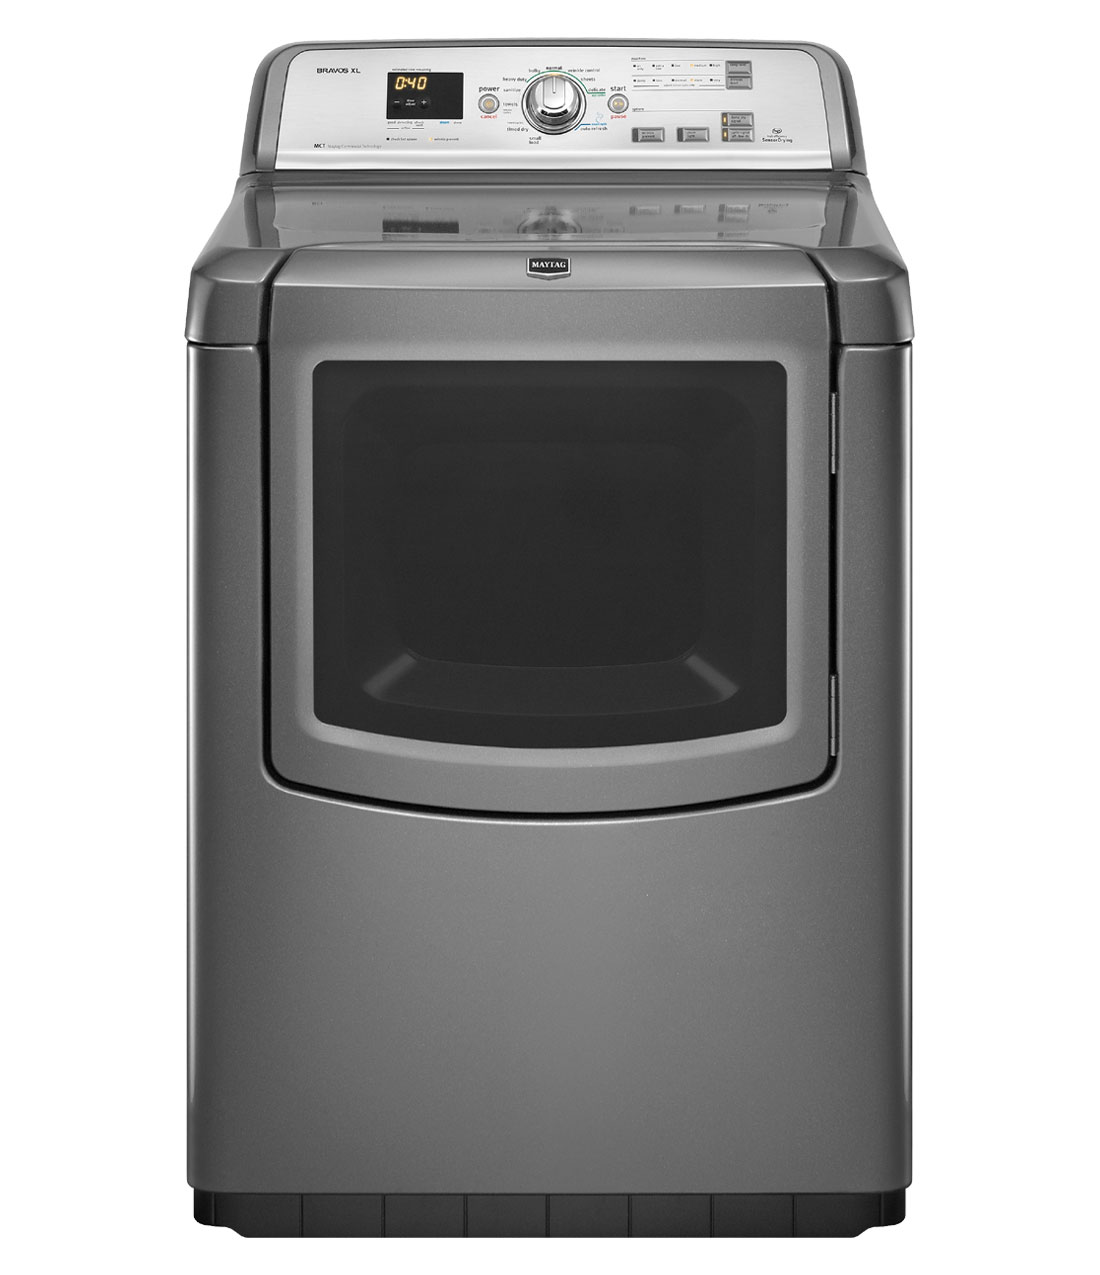 Review of Maytag Bravos XL 7.3 cu. ft. Electric Dryer with S ...